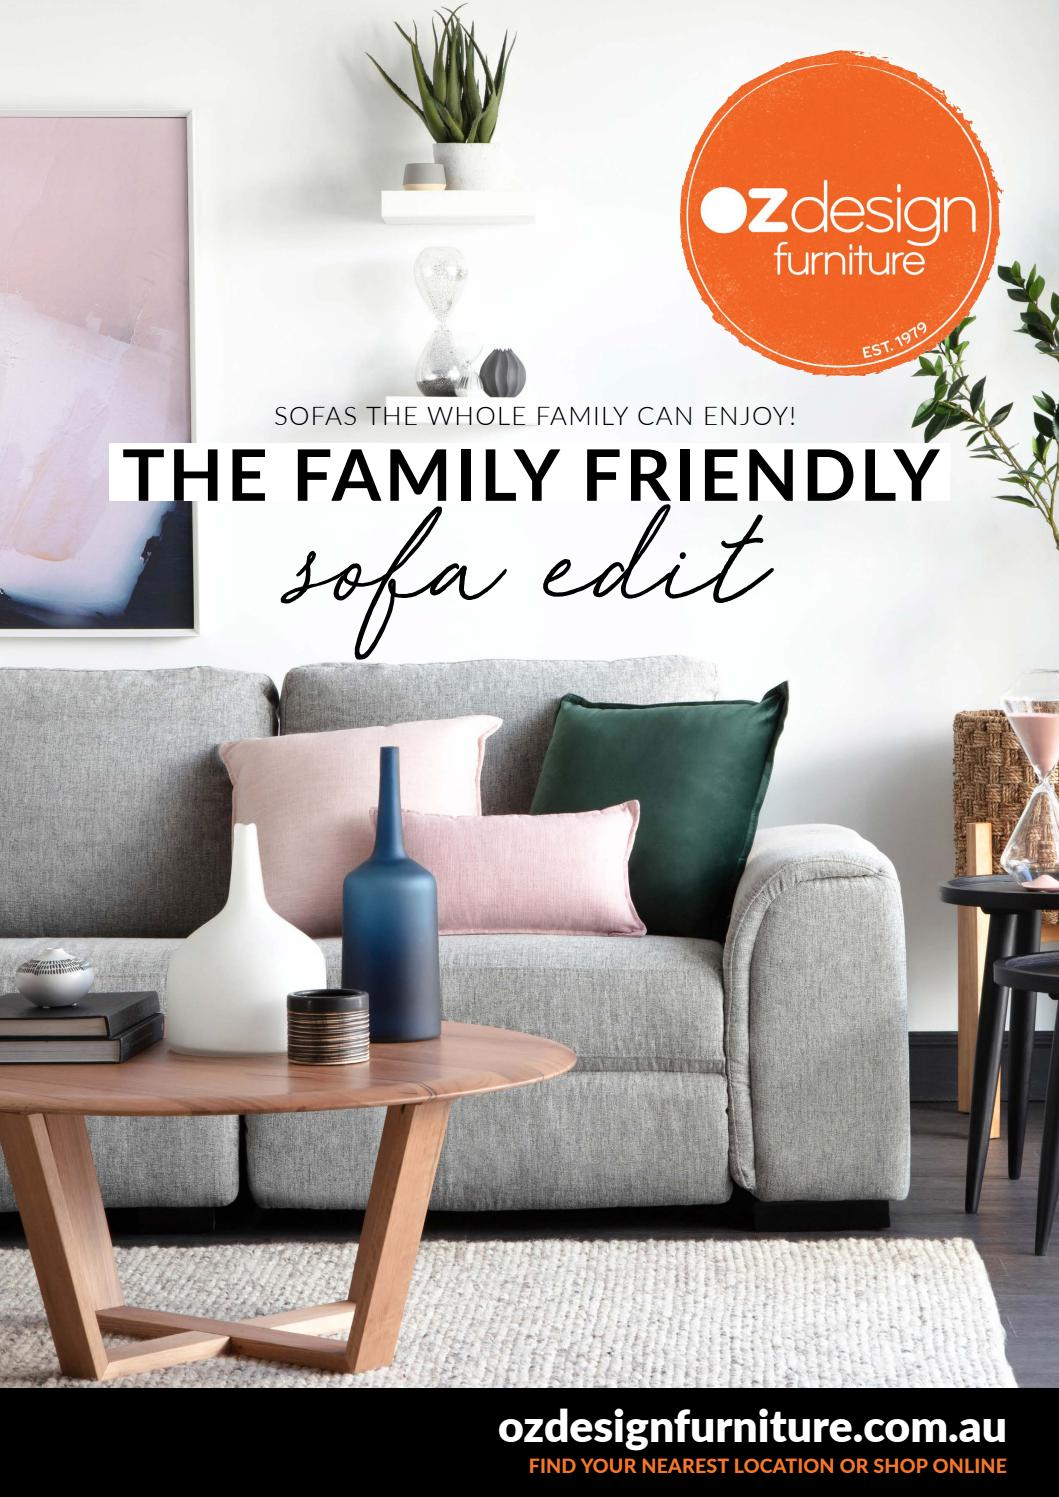 The family friendly sofa edit by oz design furniture by oz design furniture issuu